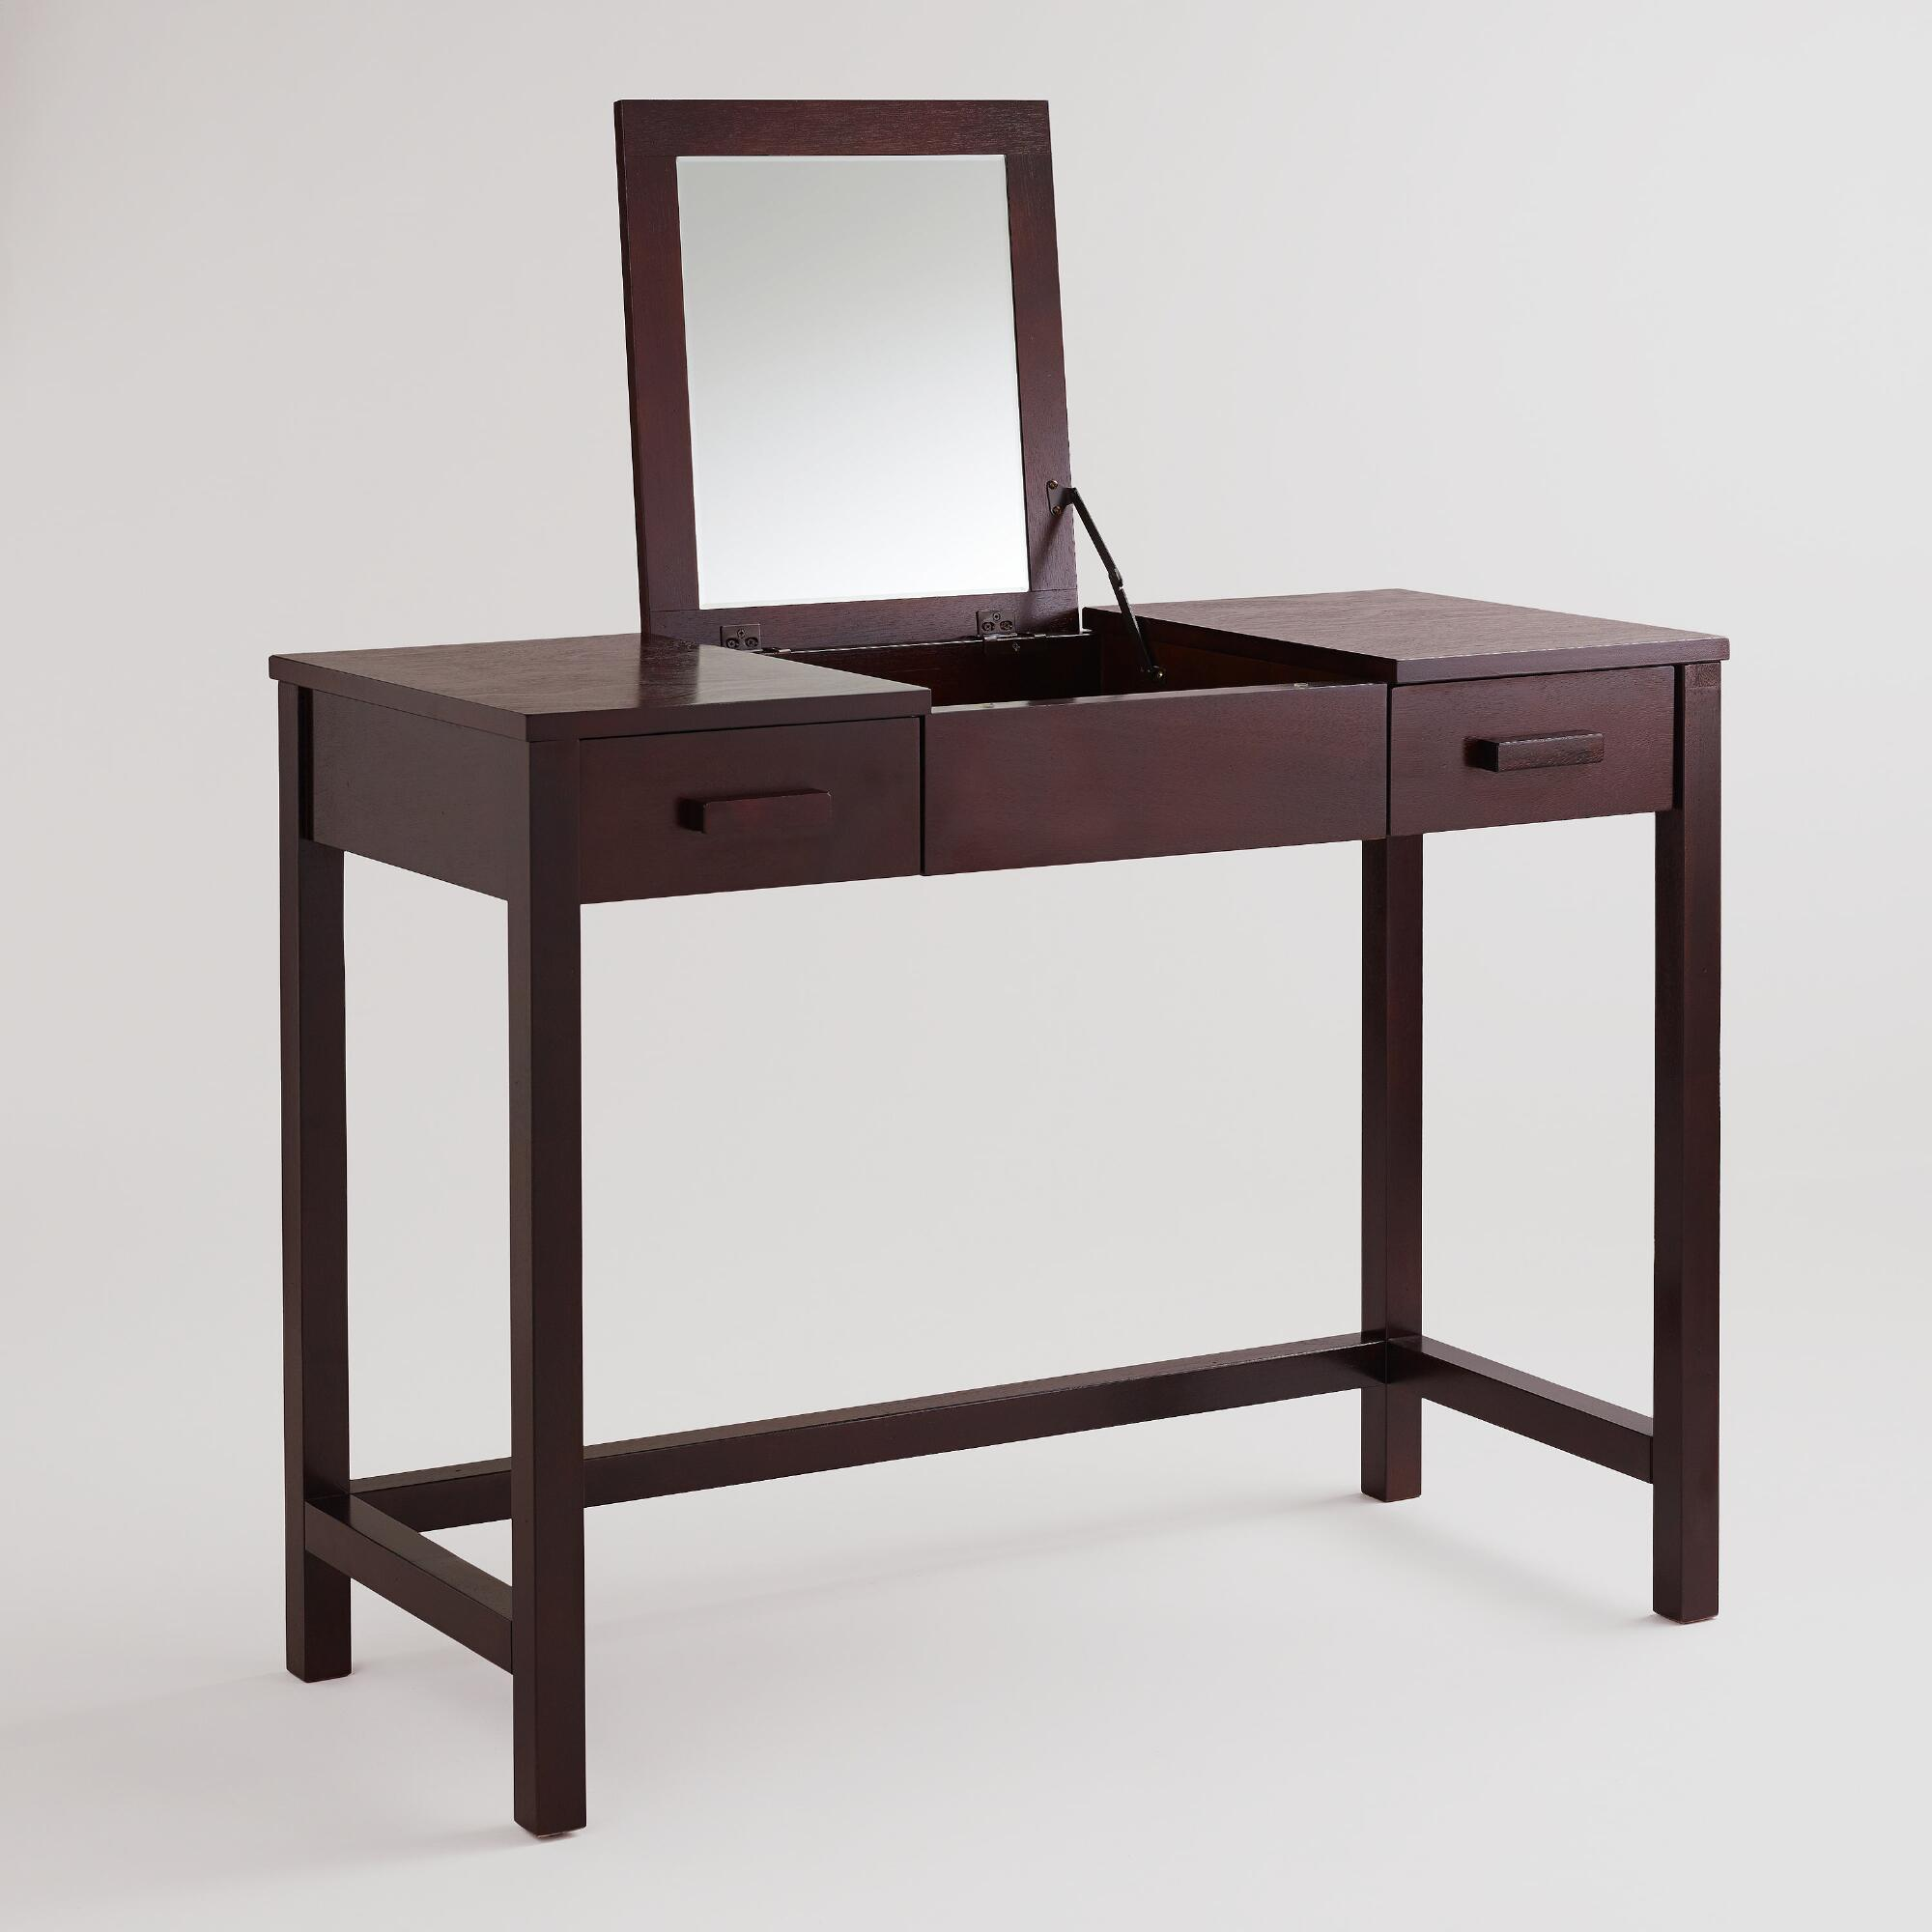 Furniture Bedroom Furniture Bedroom Furniture Corner Vanity Be